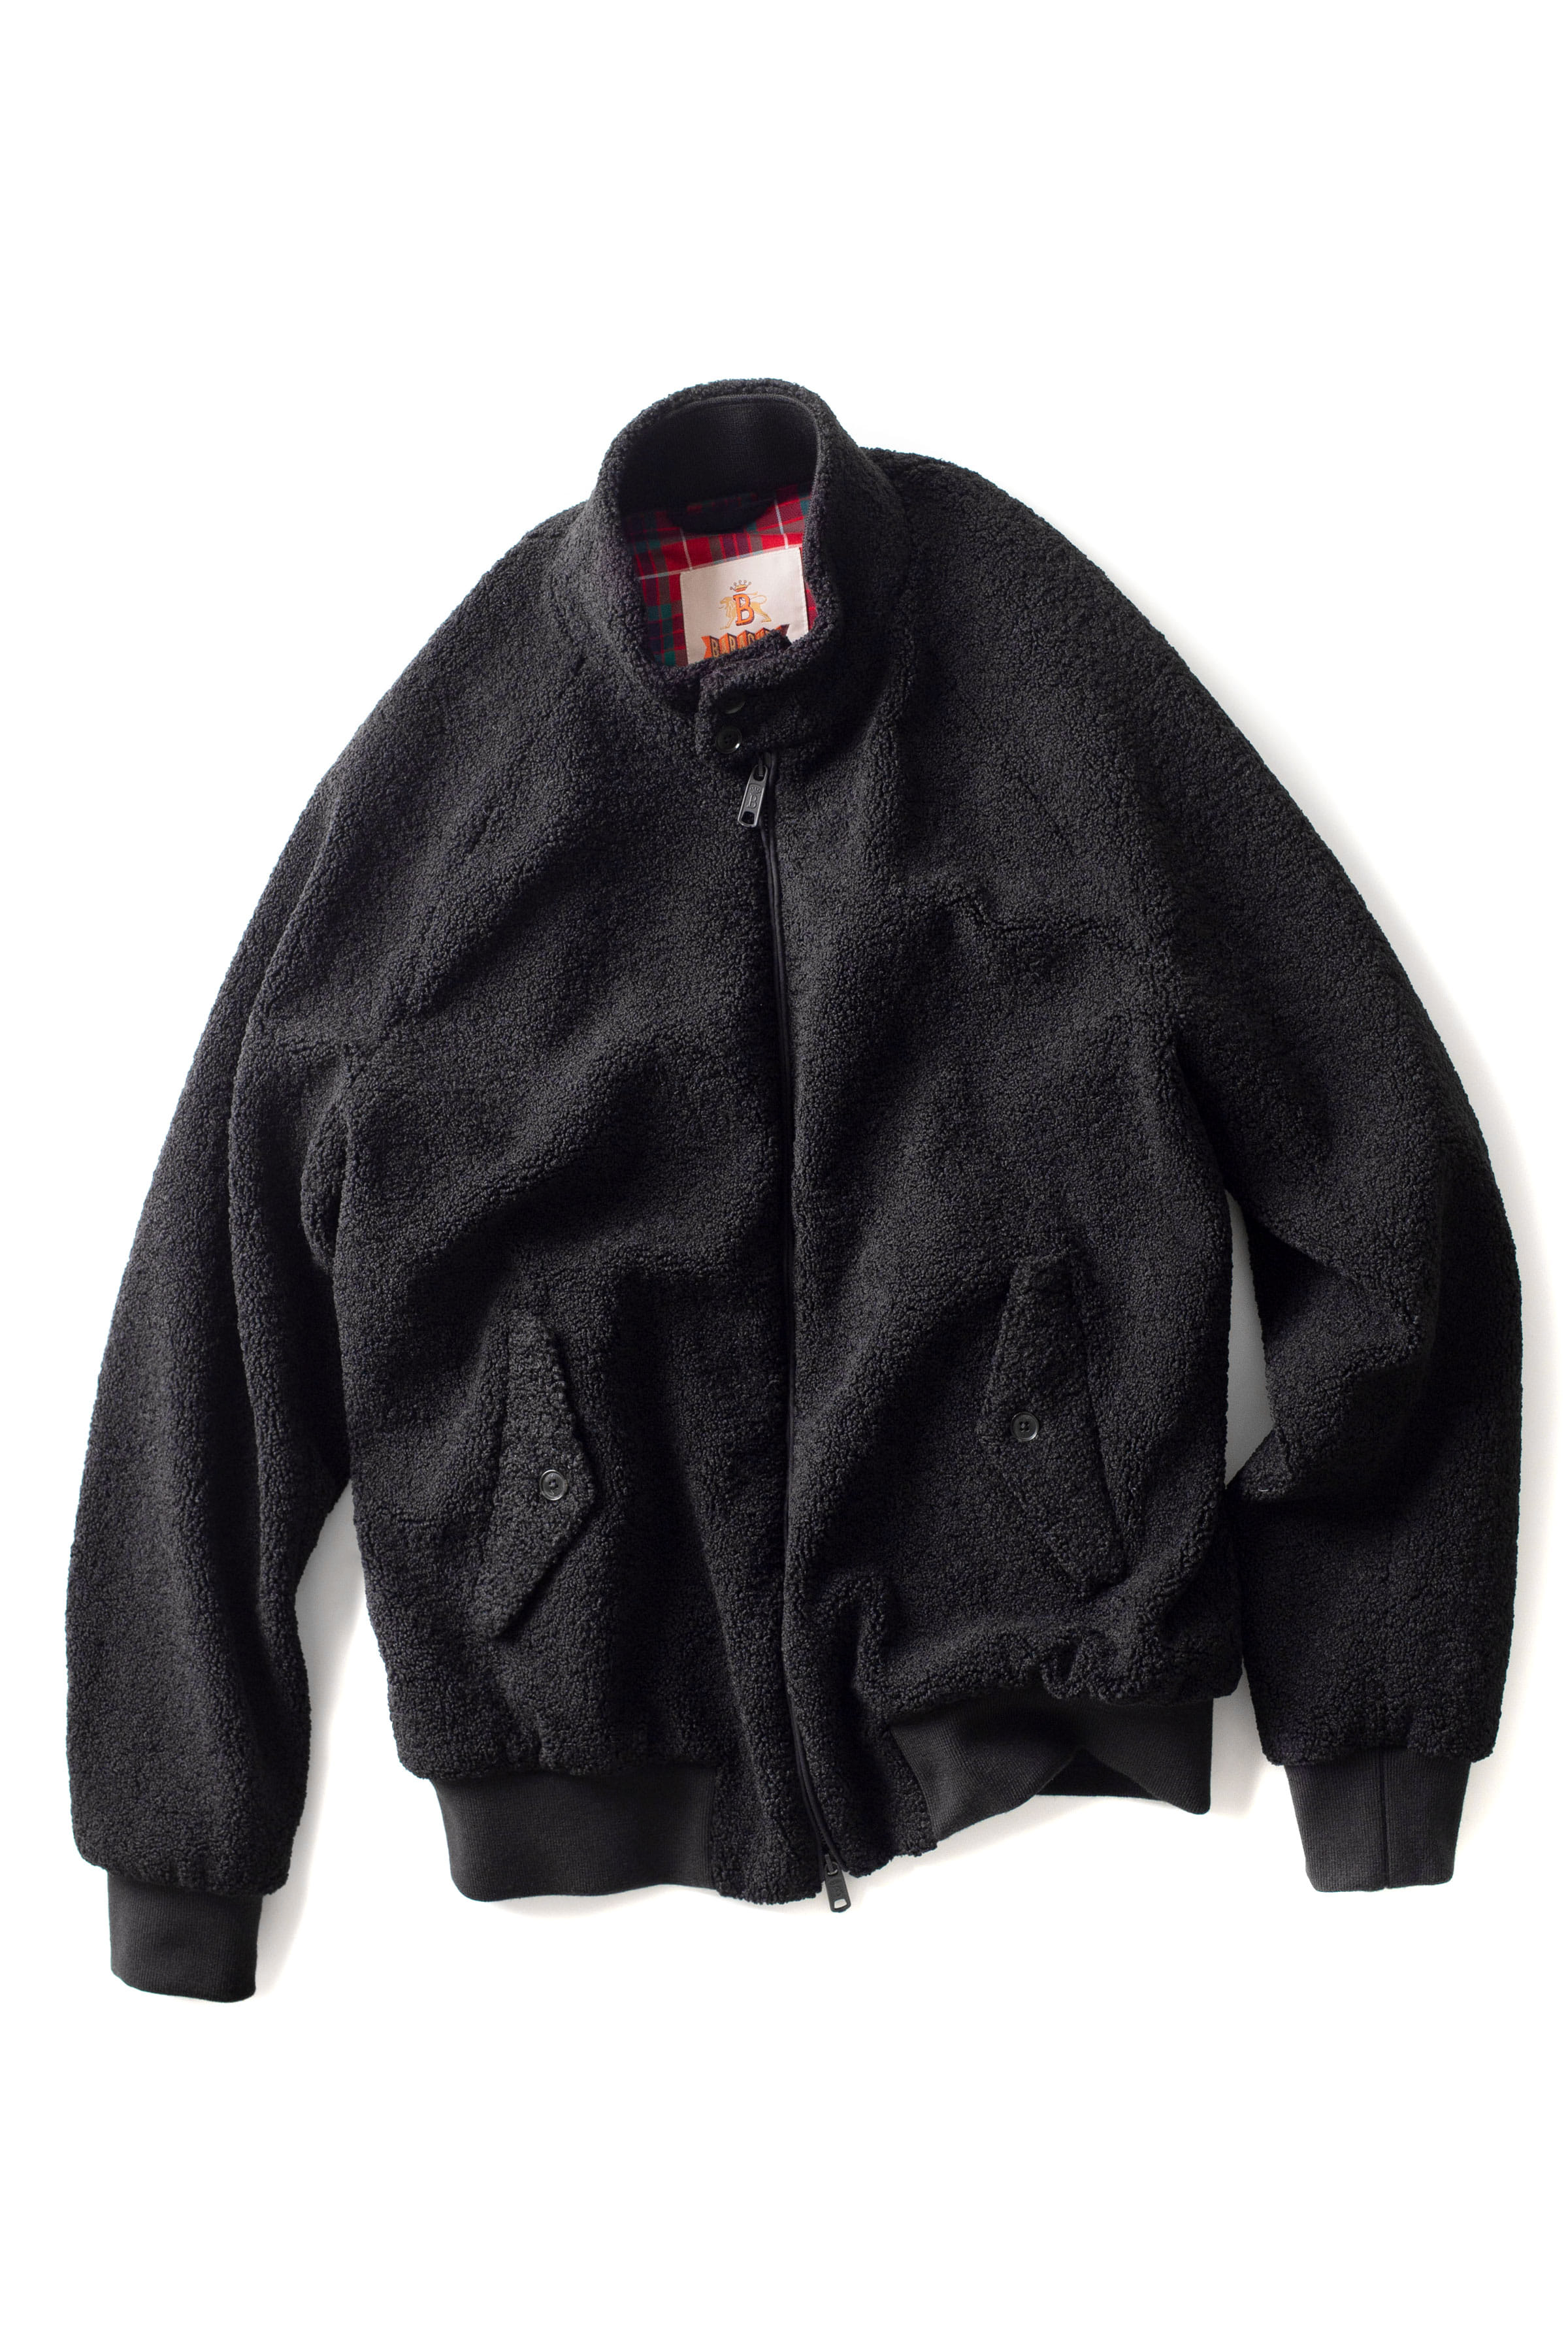 Baracuta x Engineered Garments : Teddy Bear Daiki (Black)